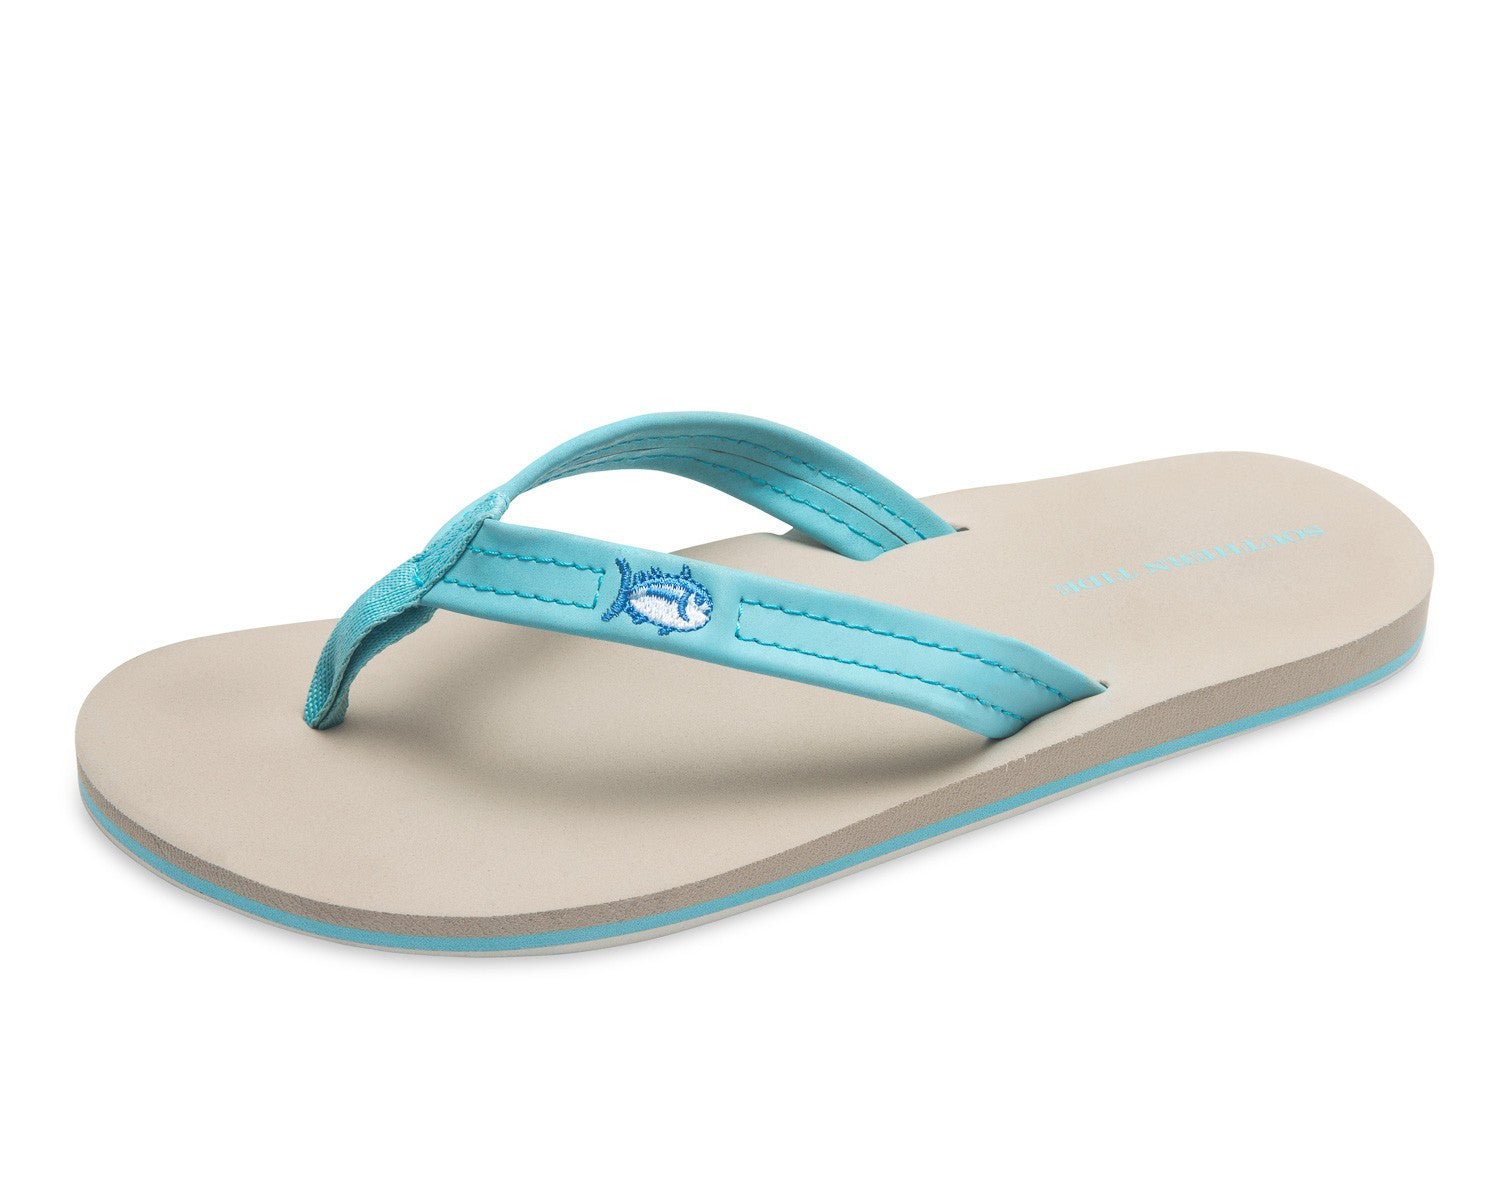 Southern Tide Women's Weekend Flipjacks - Crystal Blue Front View